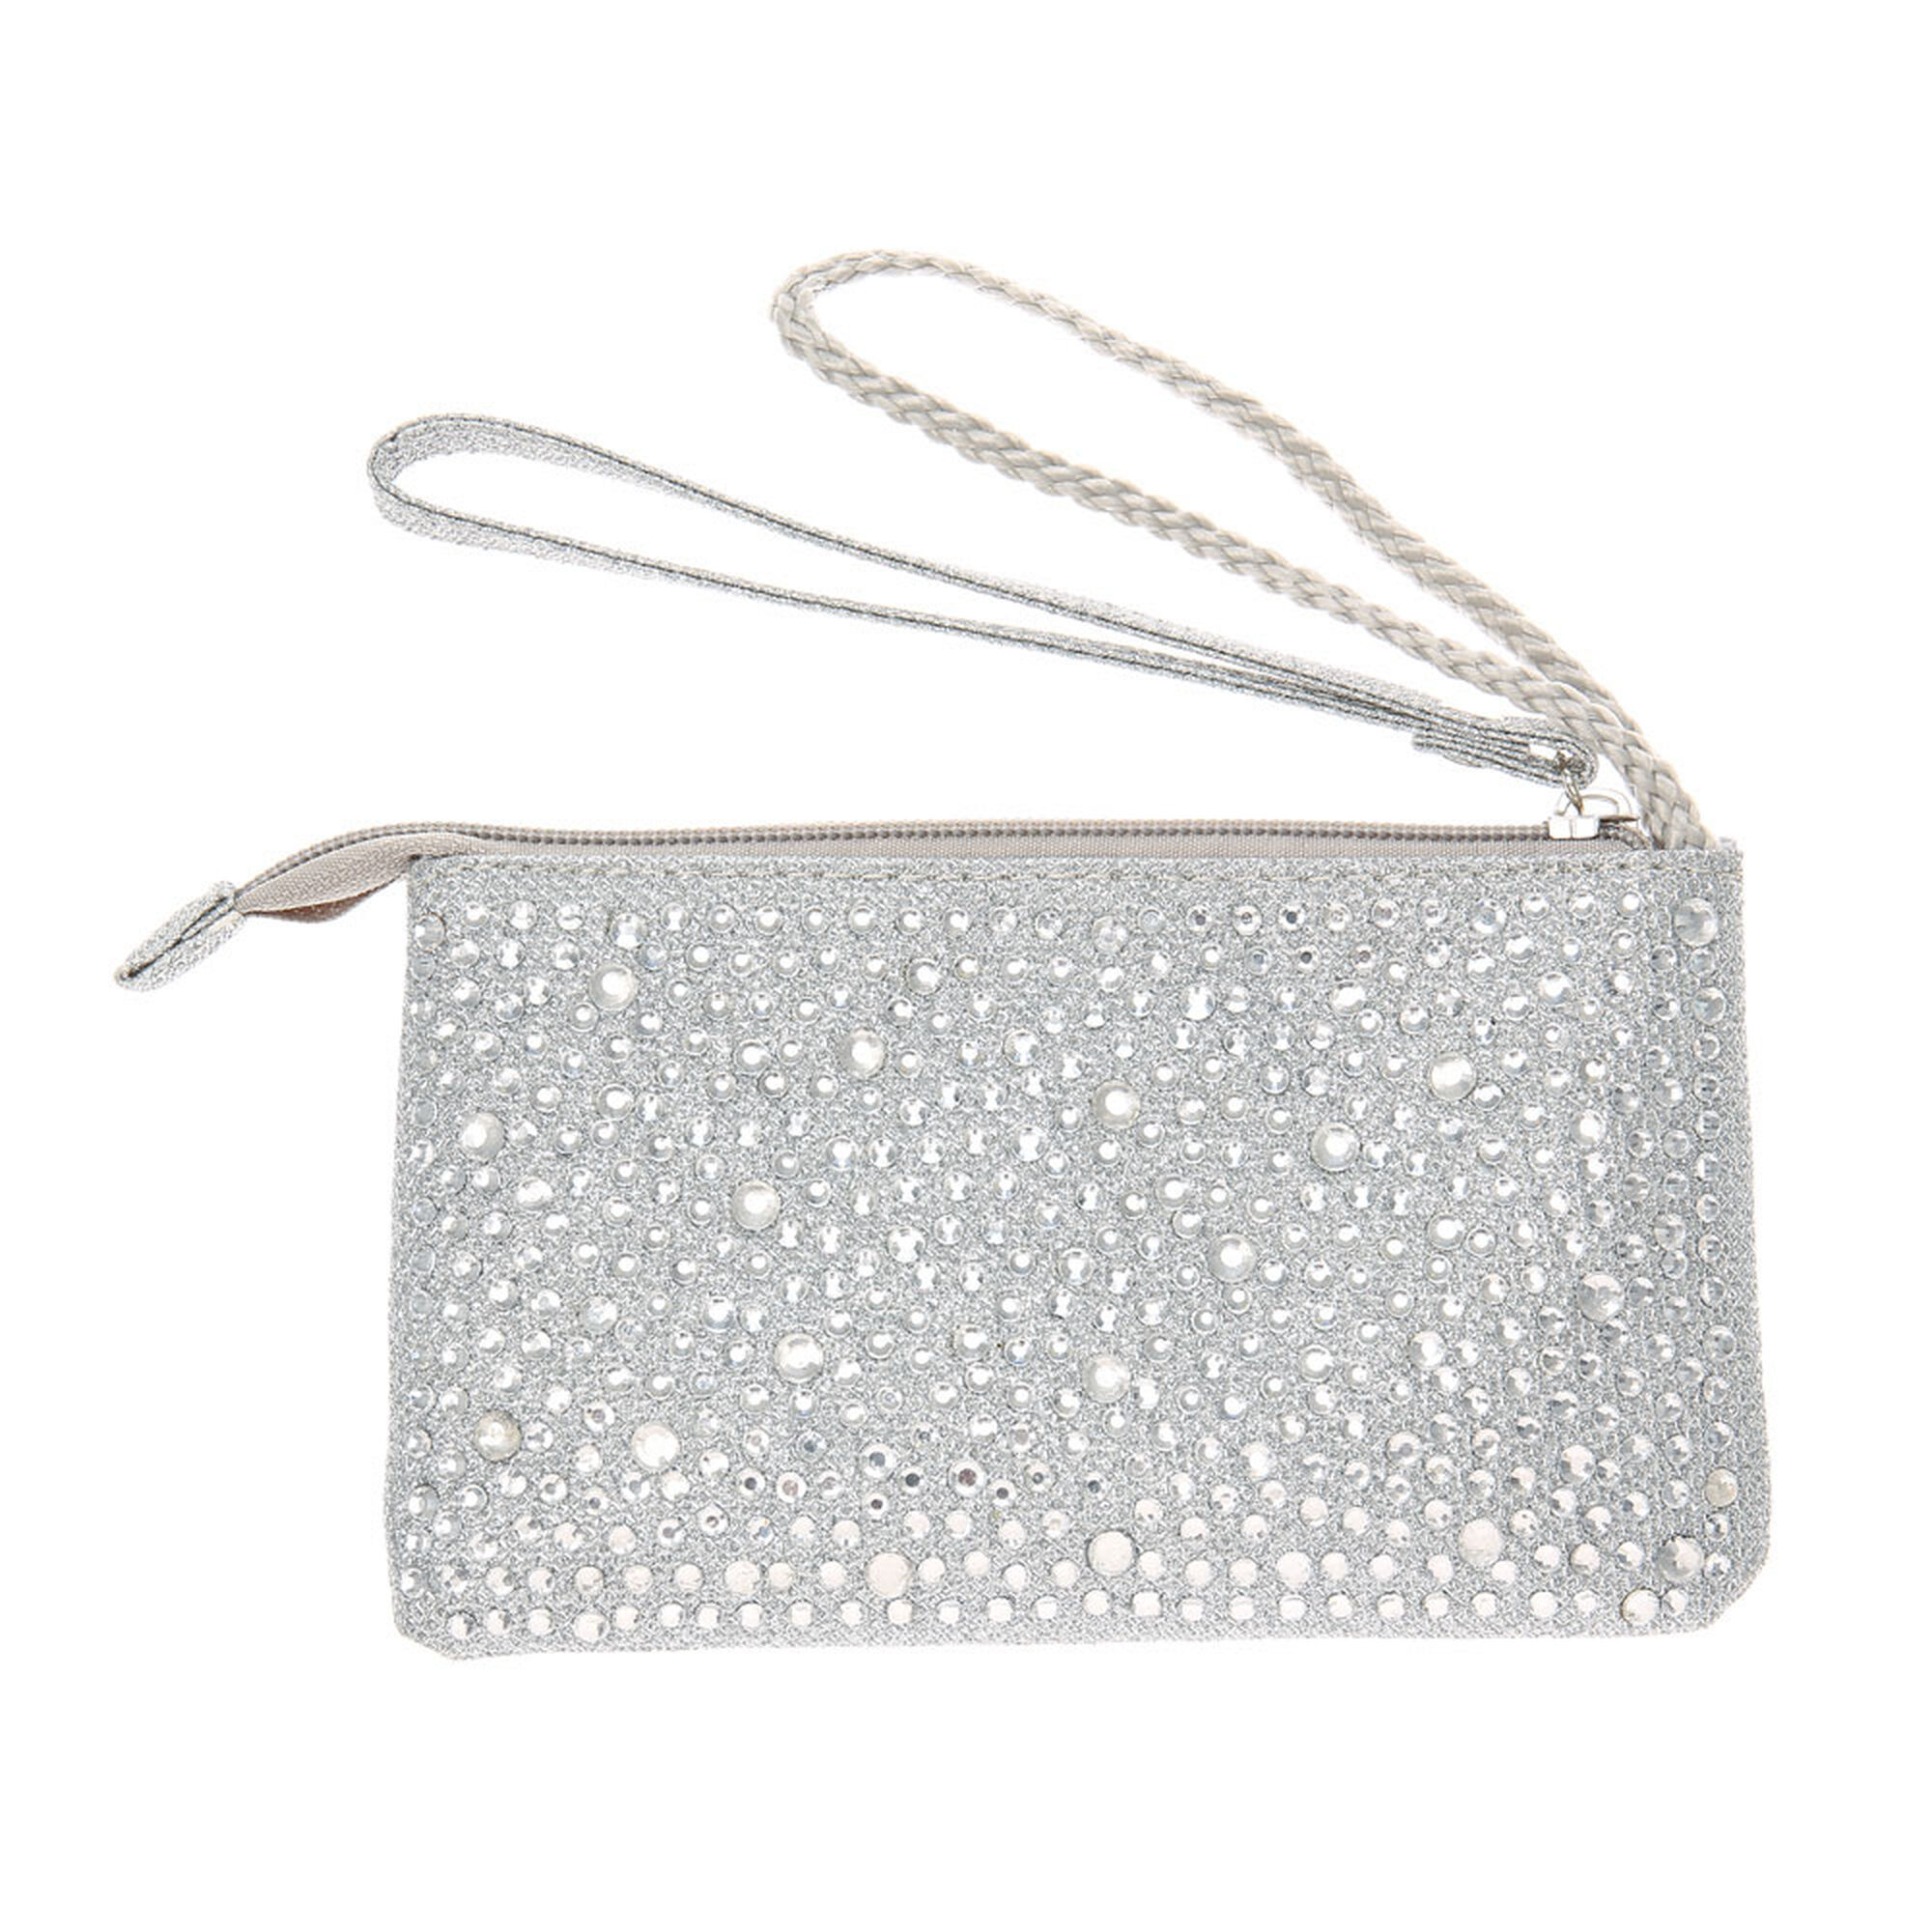 Silver Bedazzled Wristlet